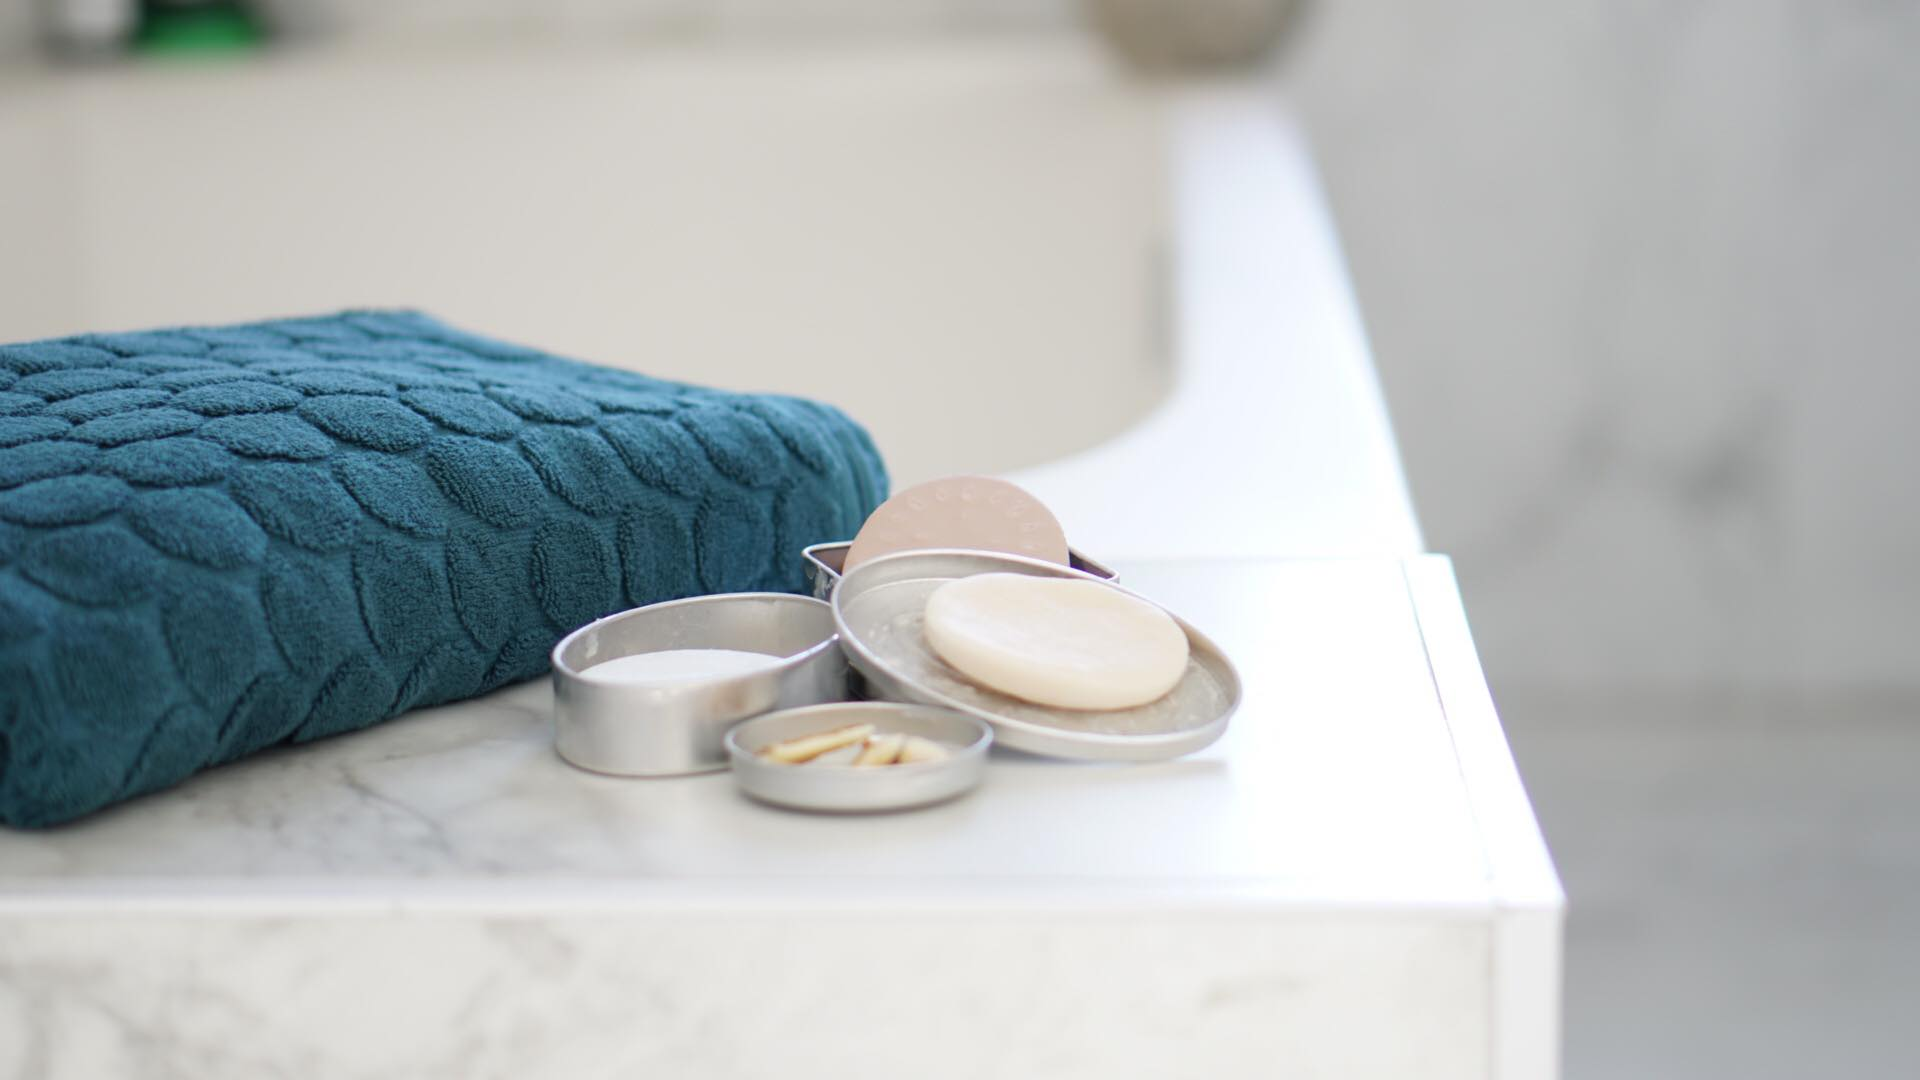 Be more sustainable - use shampoo bars